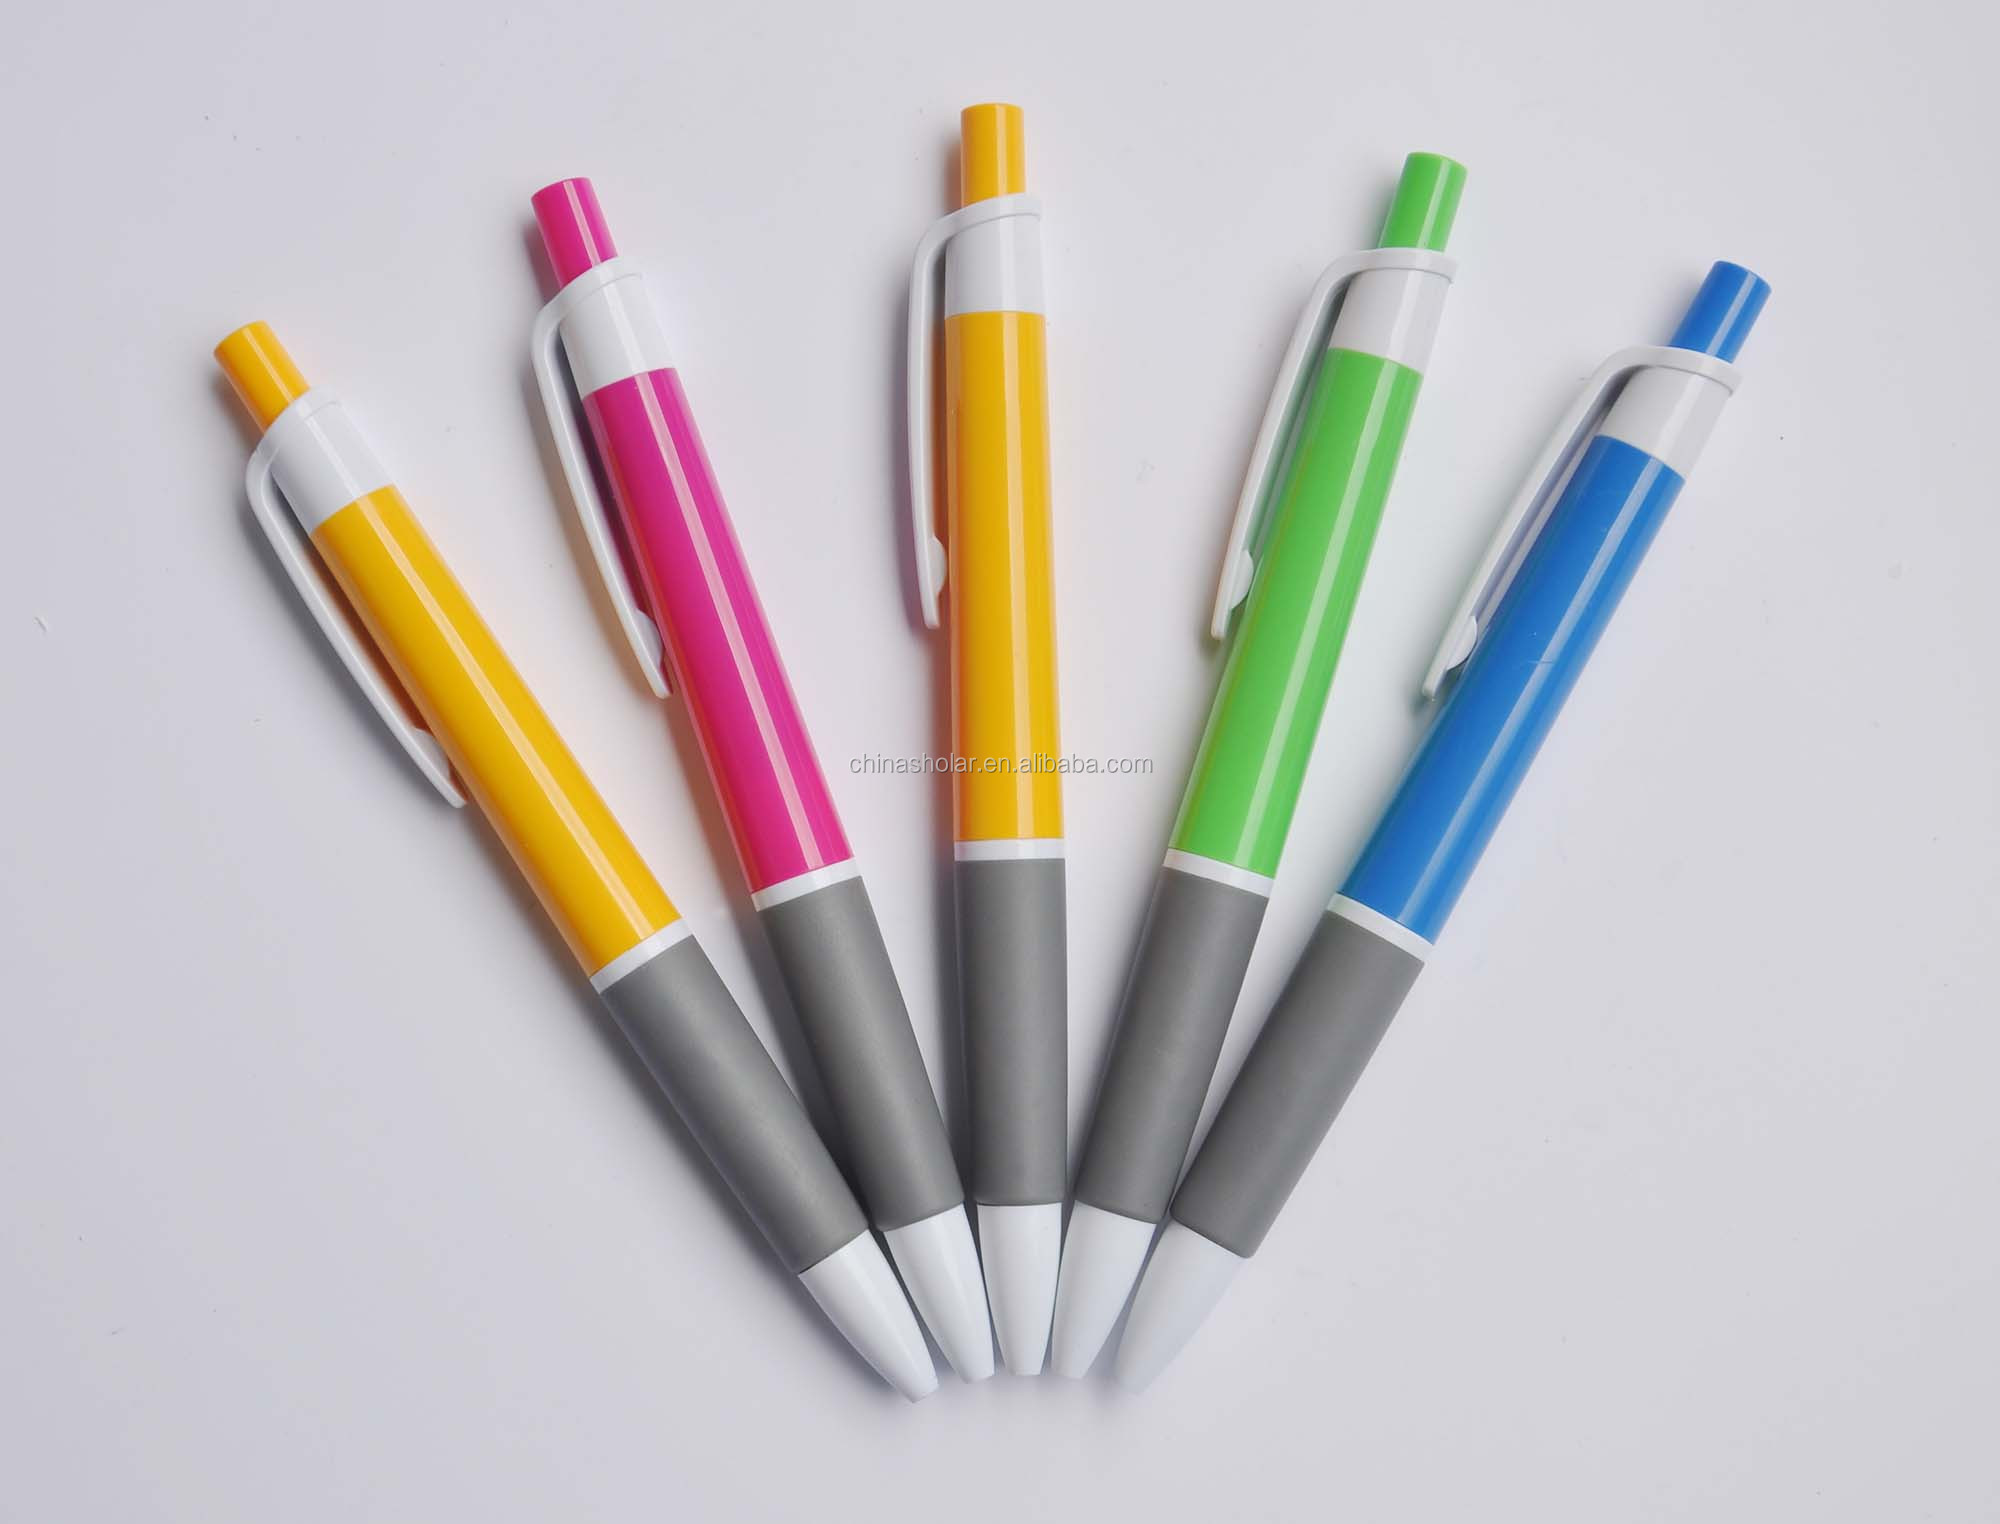 Ball Pen Companies In India With Factory Price - Buy Pen Companies ...